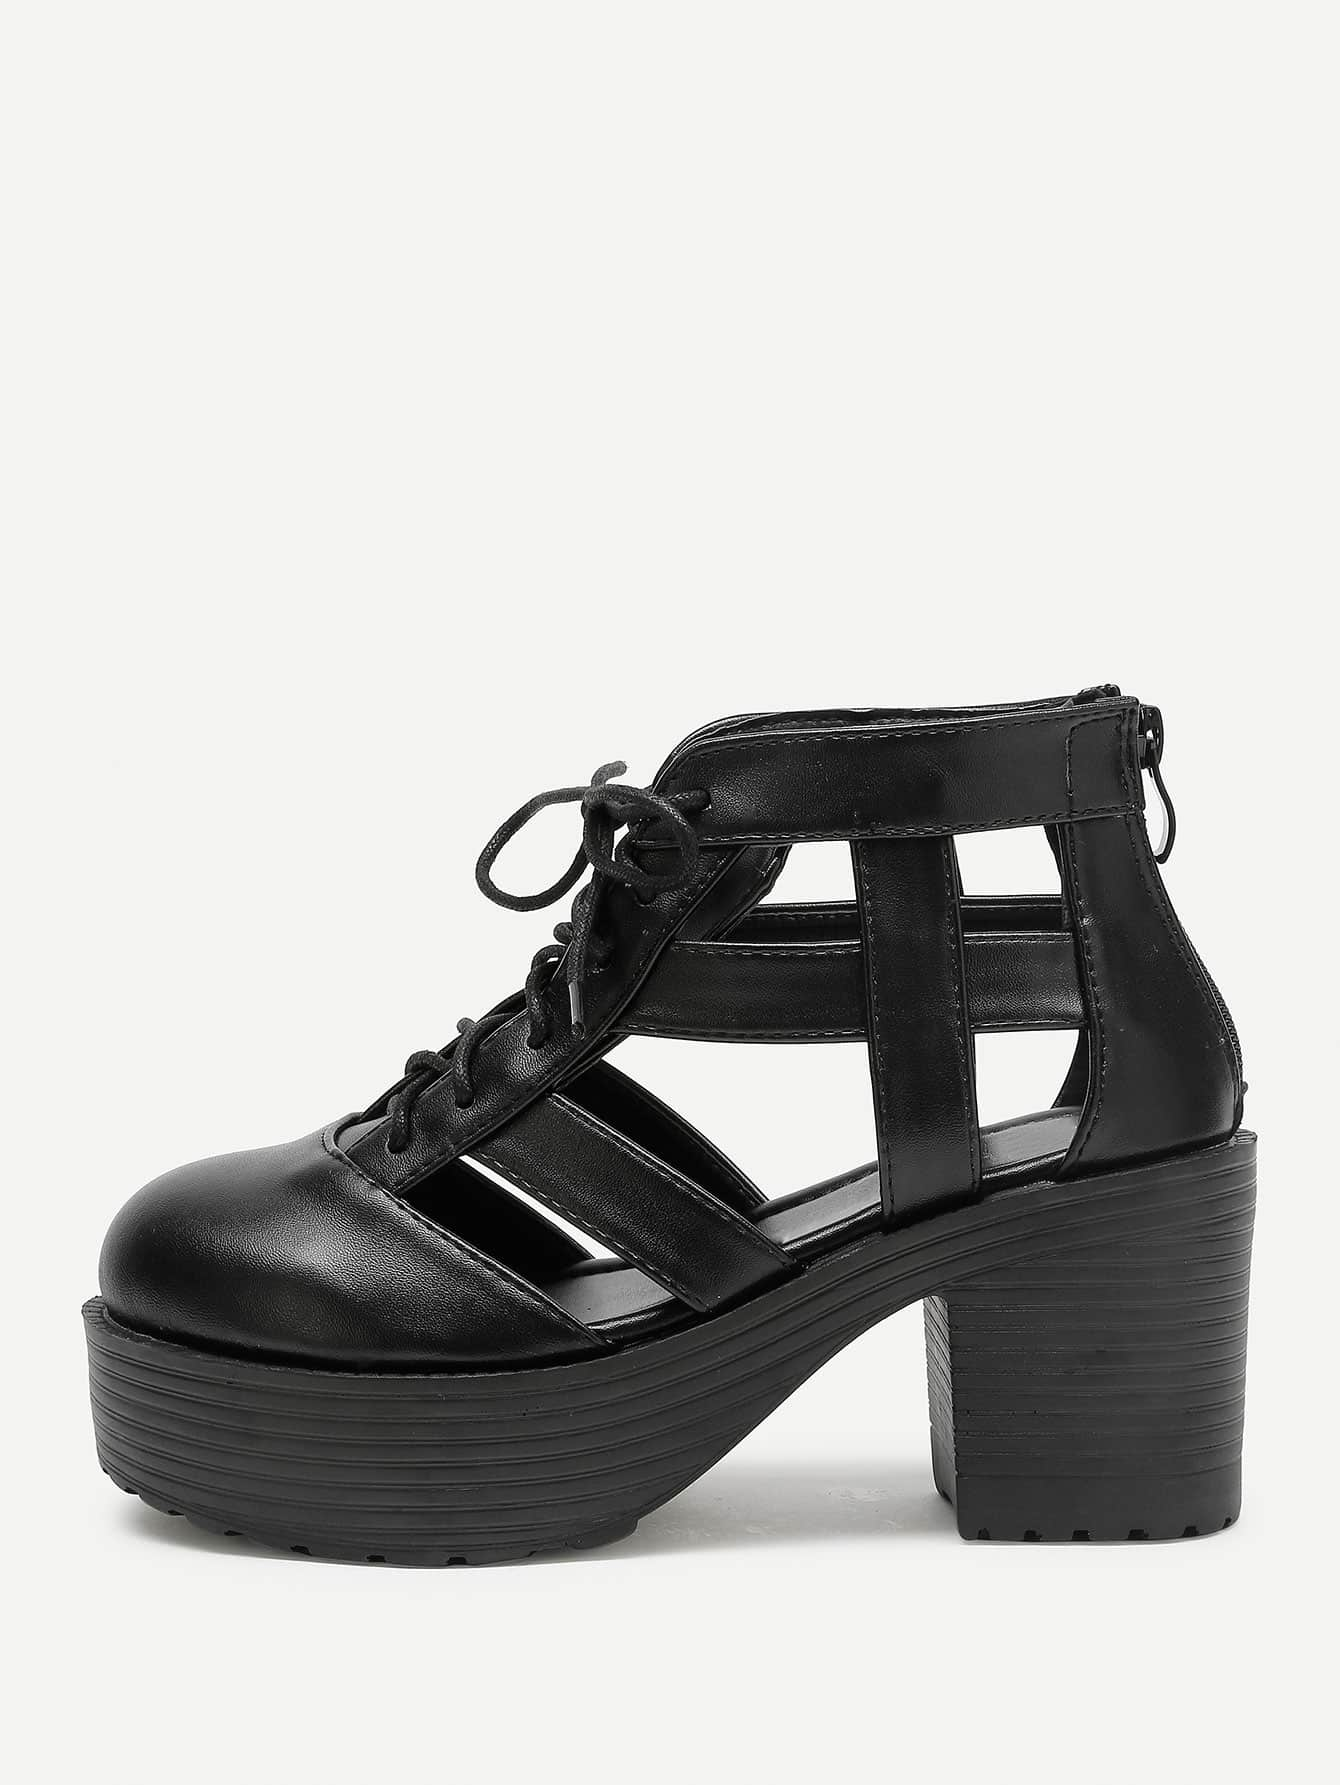 Caged Design Lace Up Platform Heeled Shoes